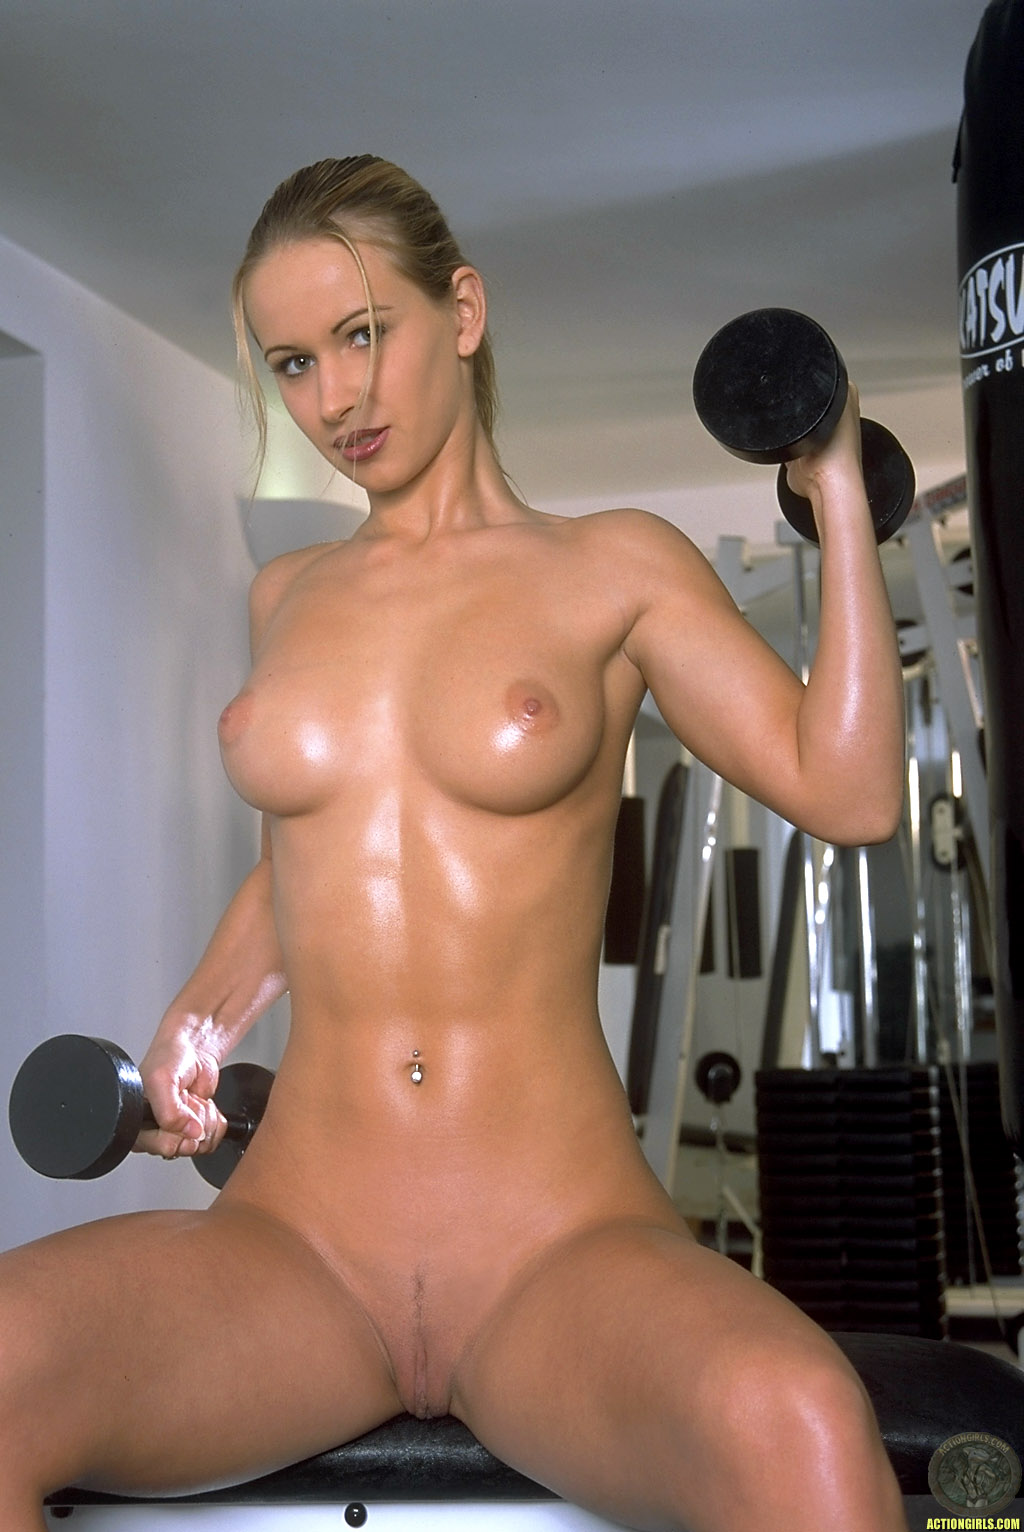 video nude fitness Hot girls workout